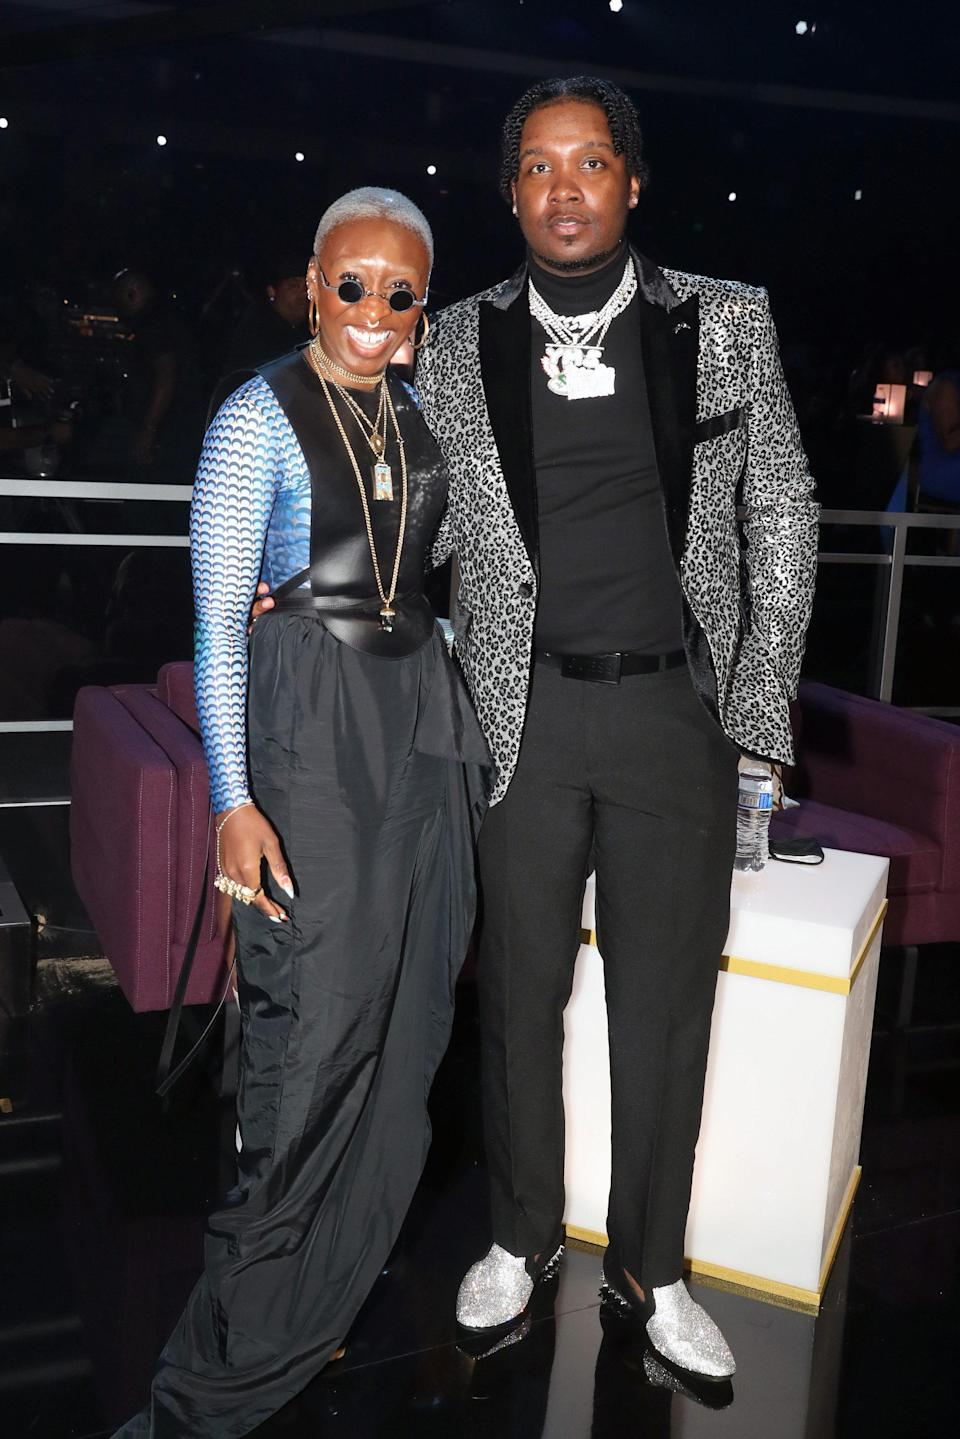 The Tony-, Grammy-, and Emmy-winning actor has never been afraid of taking fashion risks and the BET Awards wouldn't be the exception. In a true fashion power move, the star donned Marine Serre, Loewe, Rick Owens, and Vera Wang for her look.